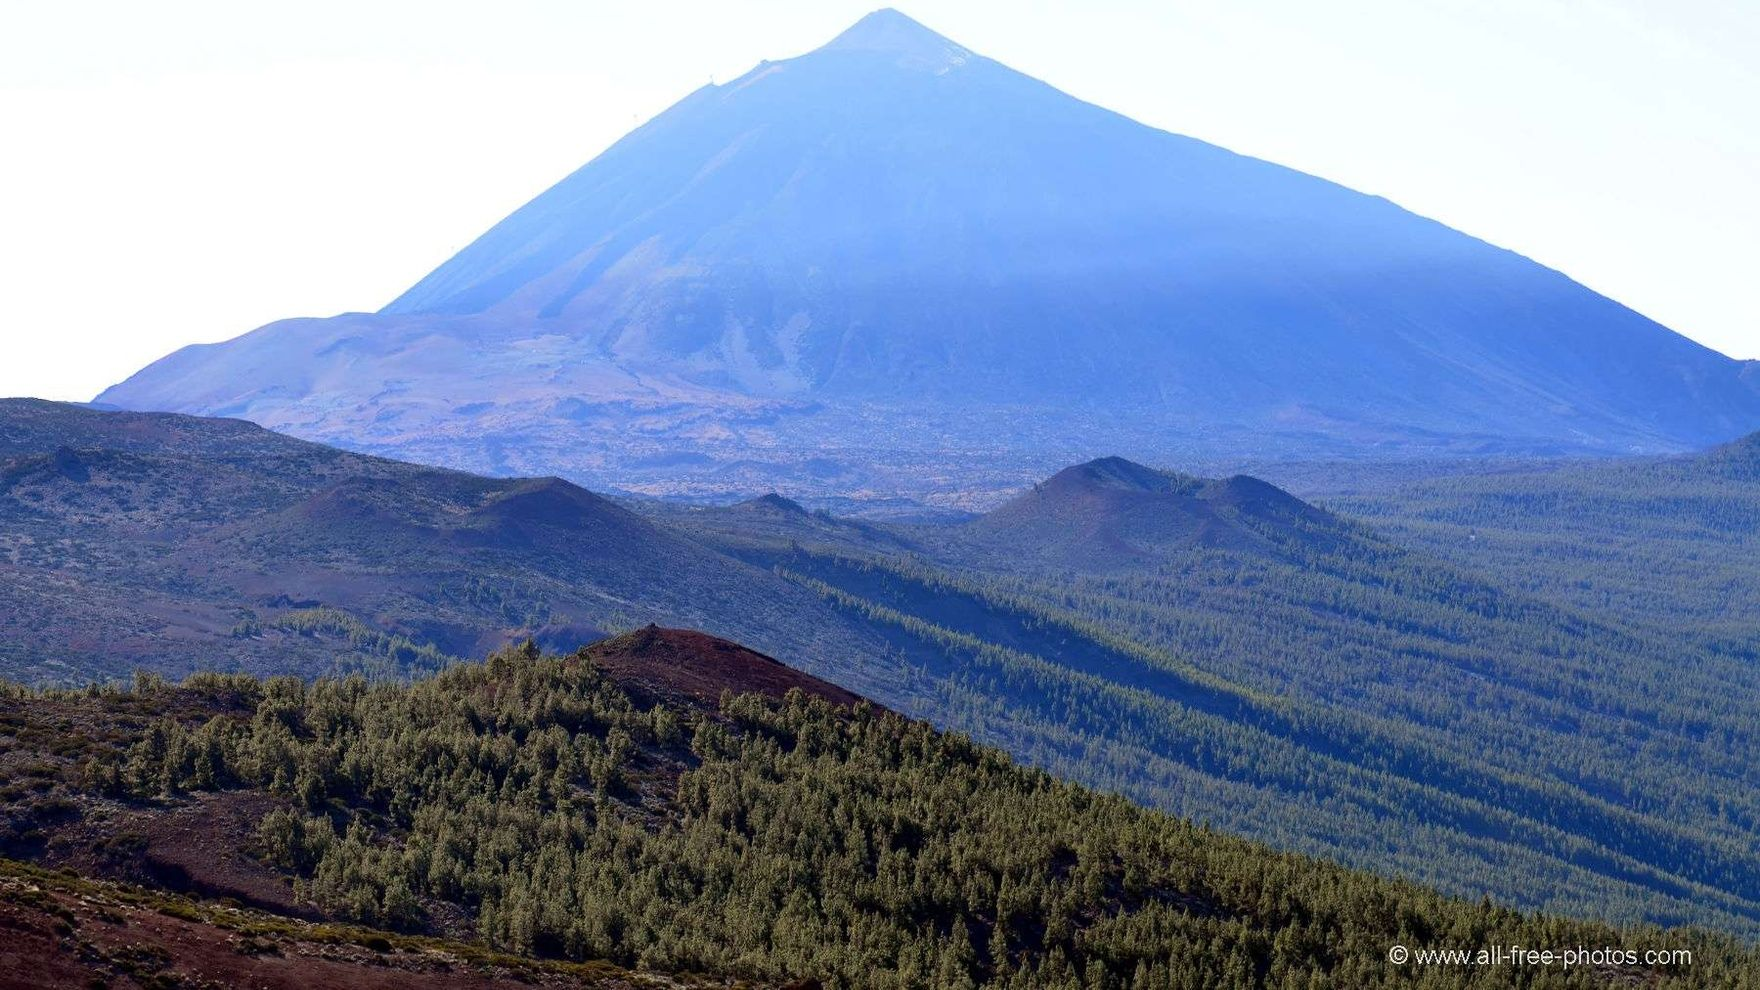 Canary Islands cruise from Tenerife